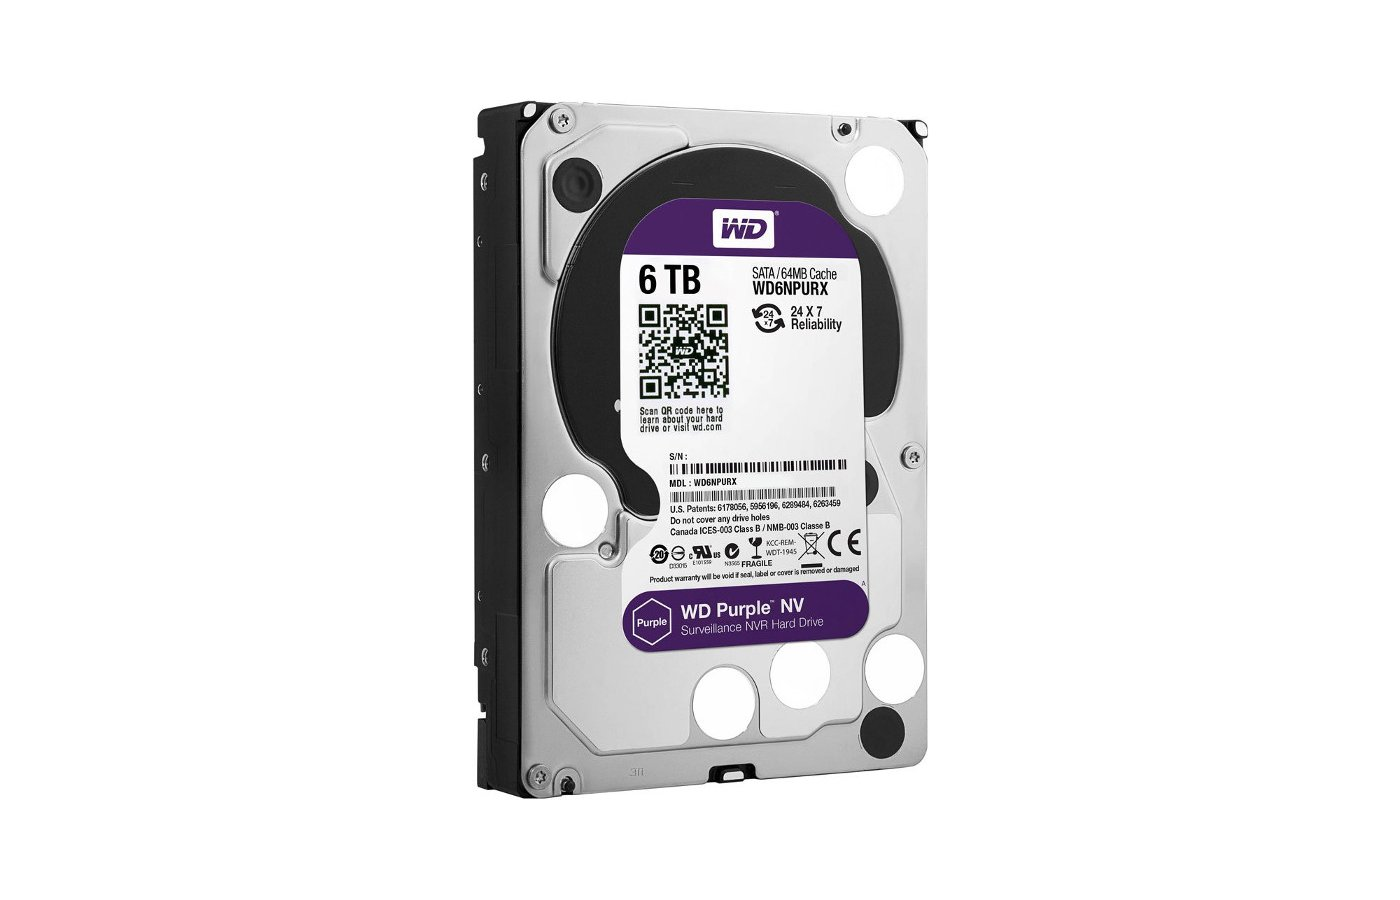 Жесткий диск WD Original SATA-III 6Tb WD6NPURX Purple NV 64Mb 3.5""